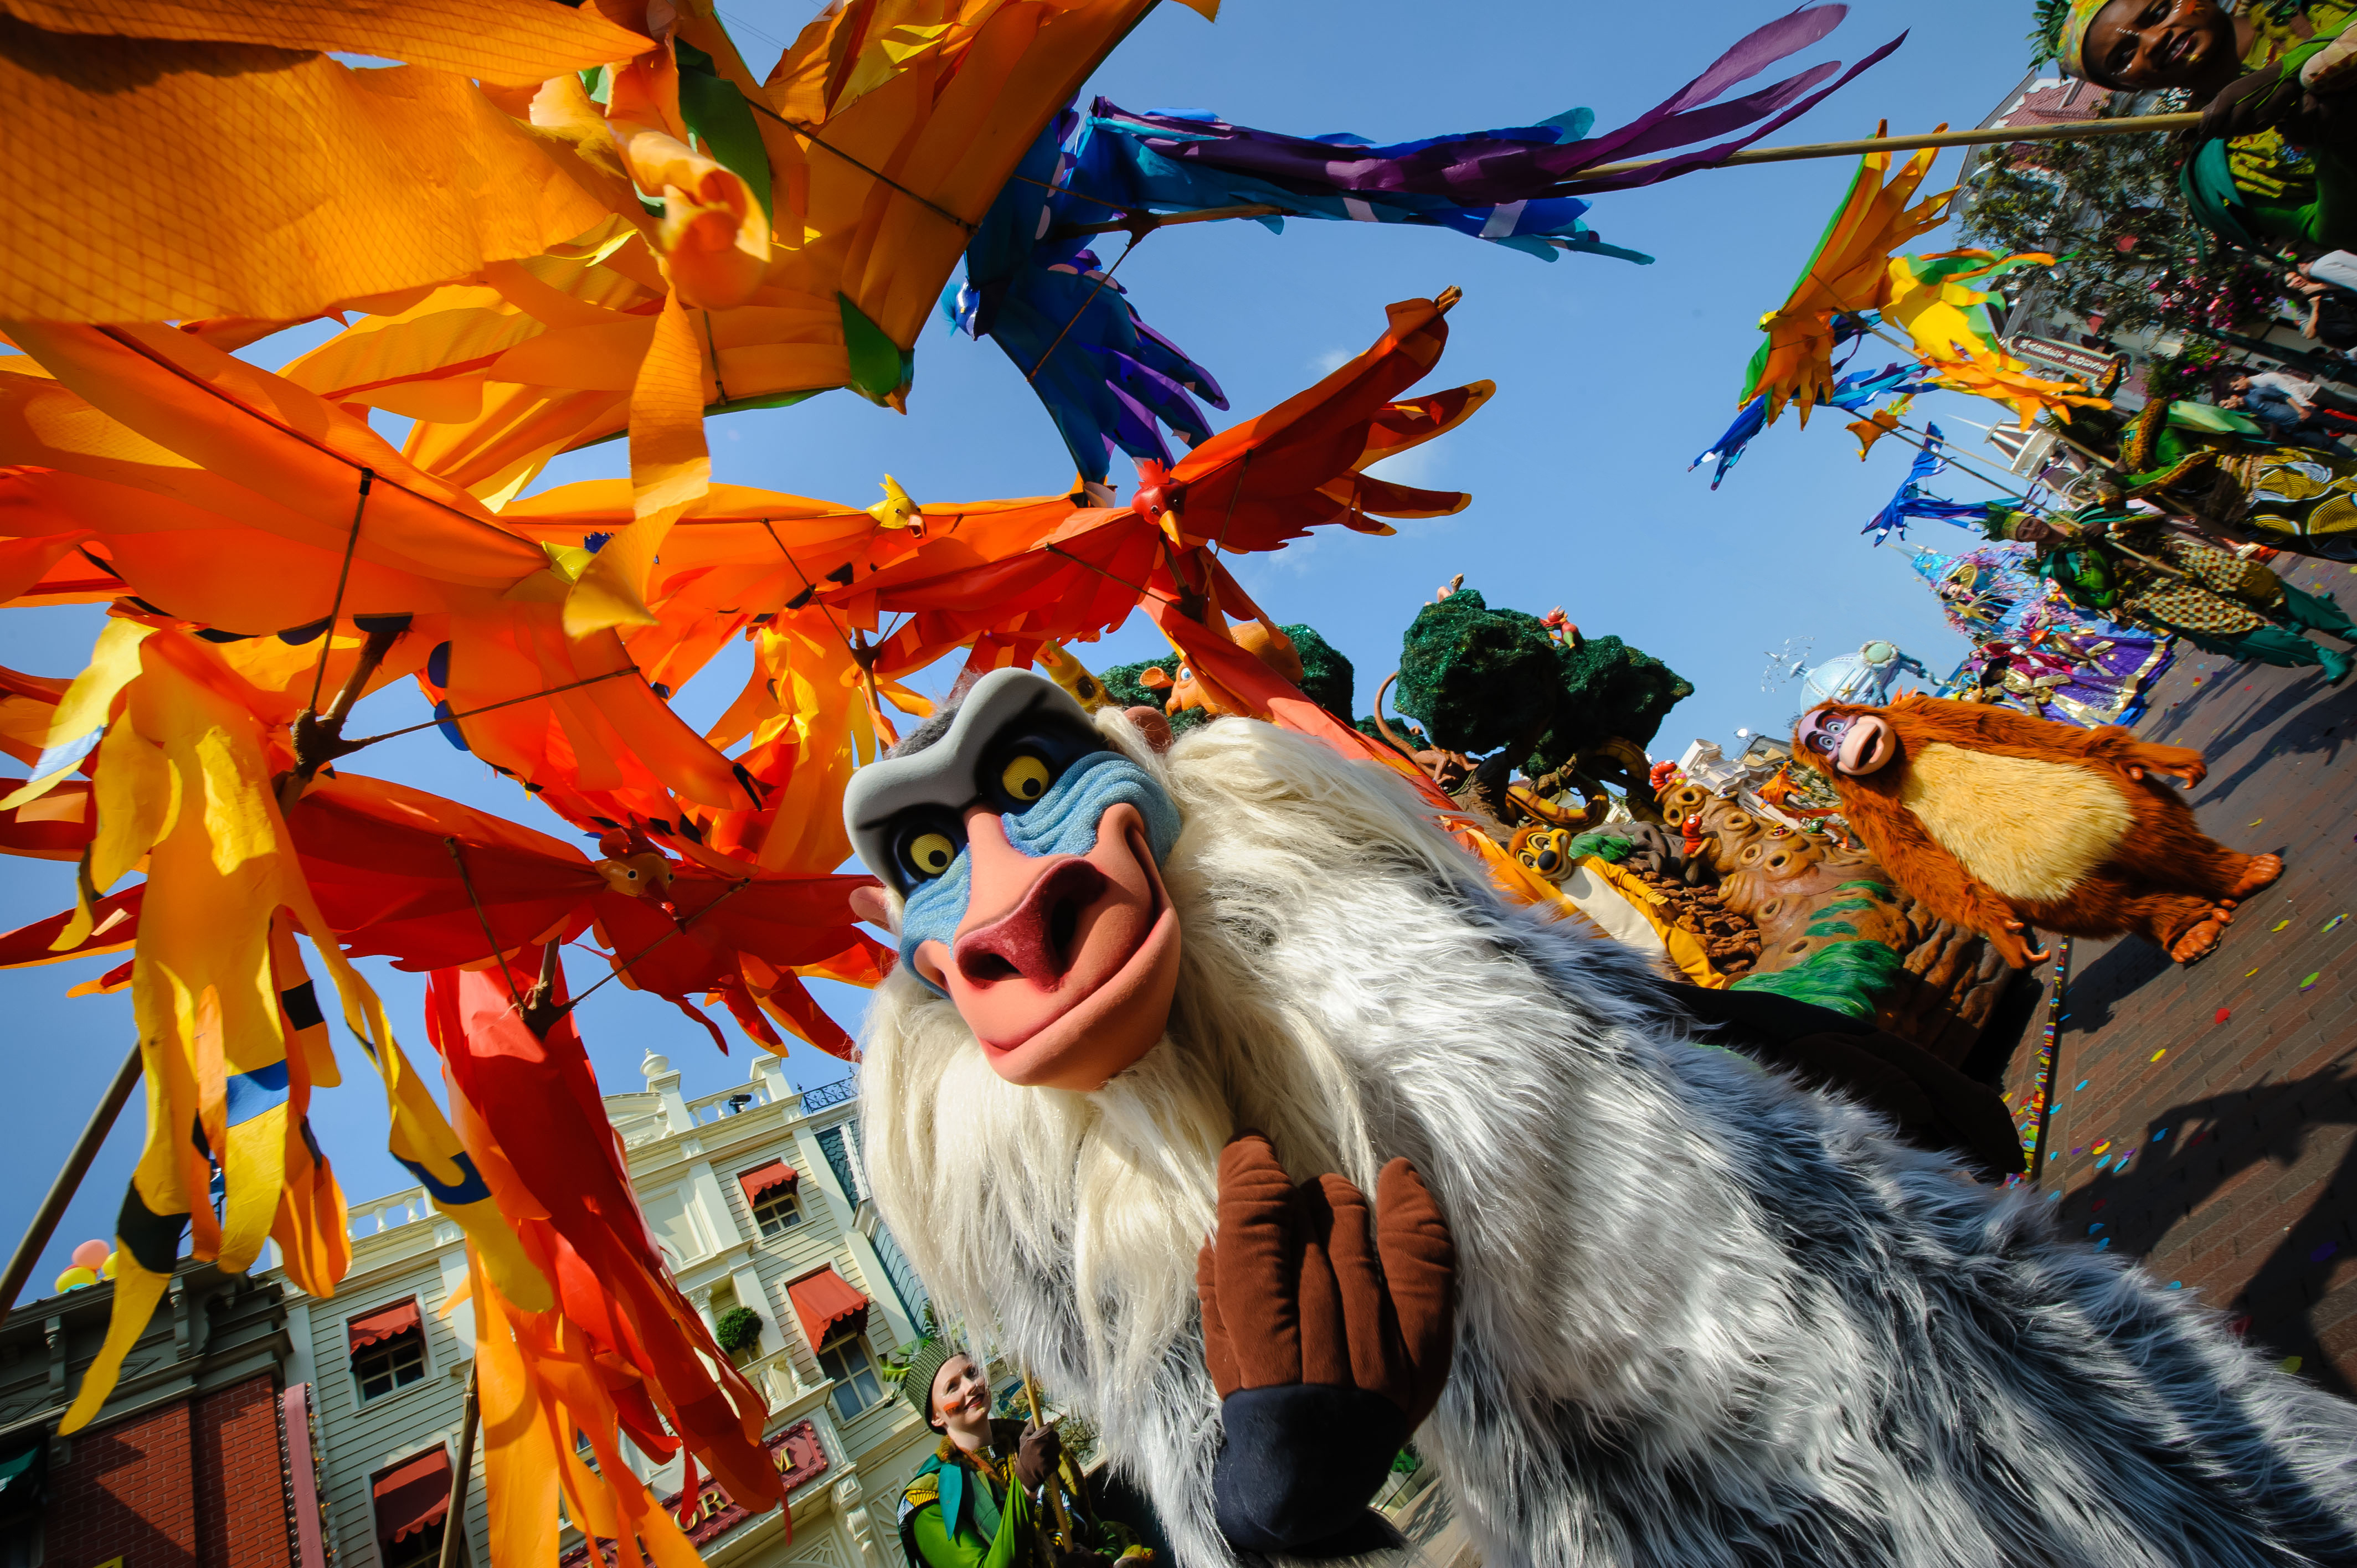 Rafiki at the Lion King and Jungle Festival